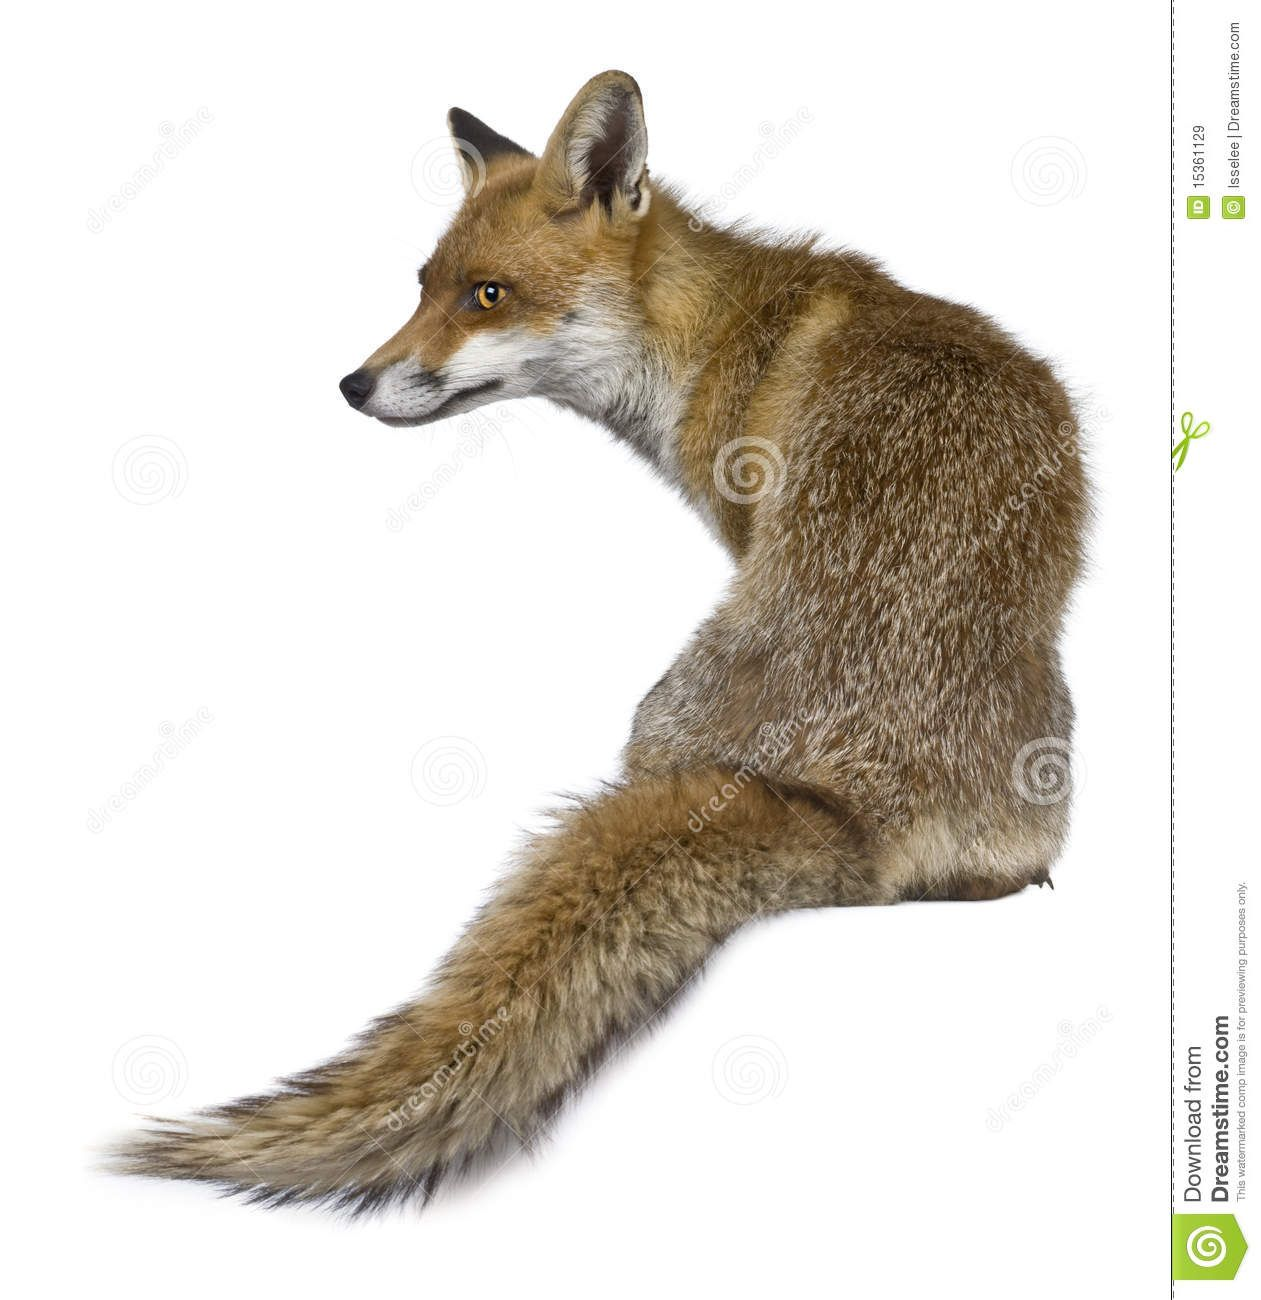 Rear View Of Red Fox, 1 Year Old, Sitting Royalty Free Stock Images - Image: 15361129